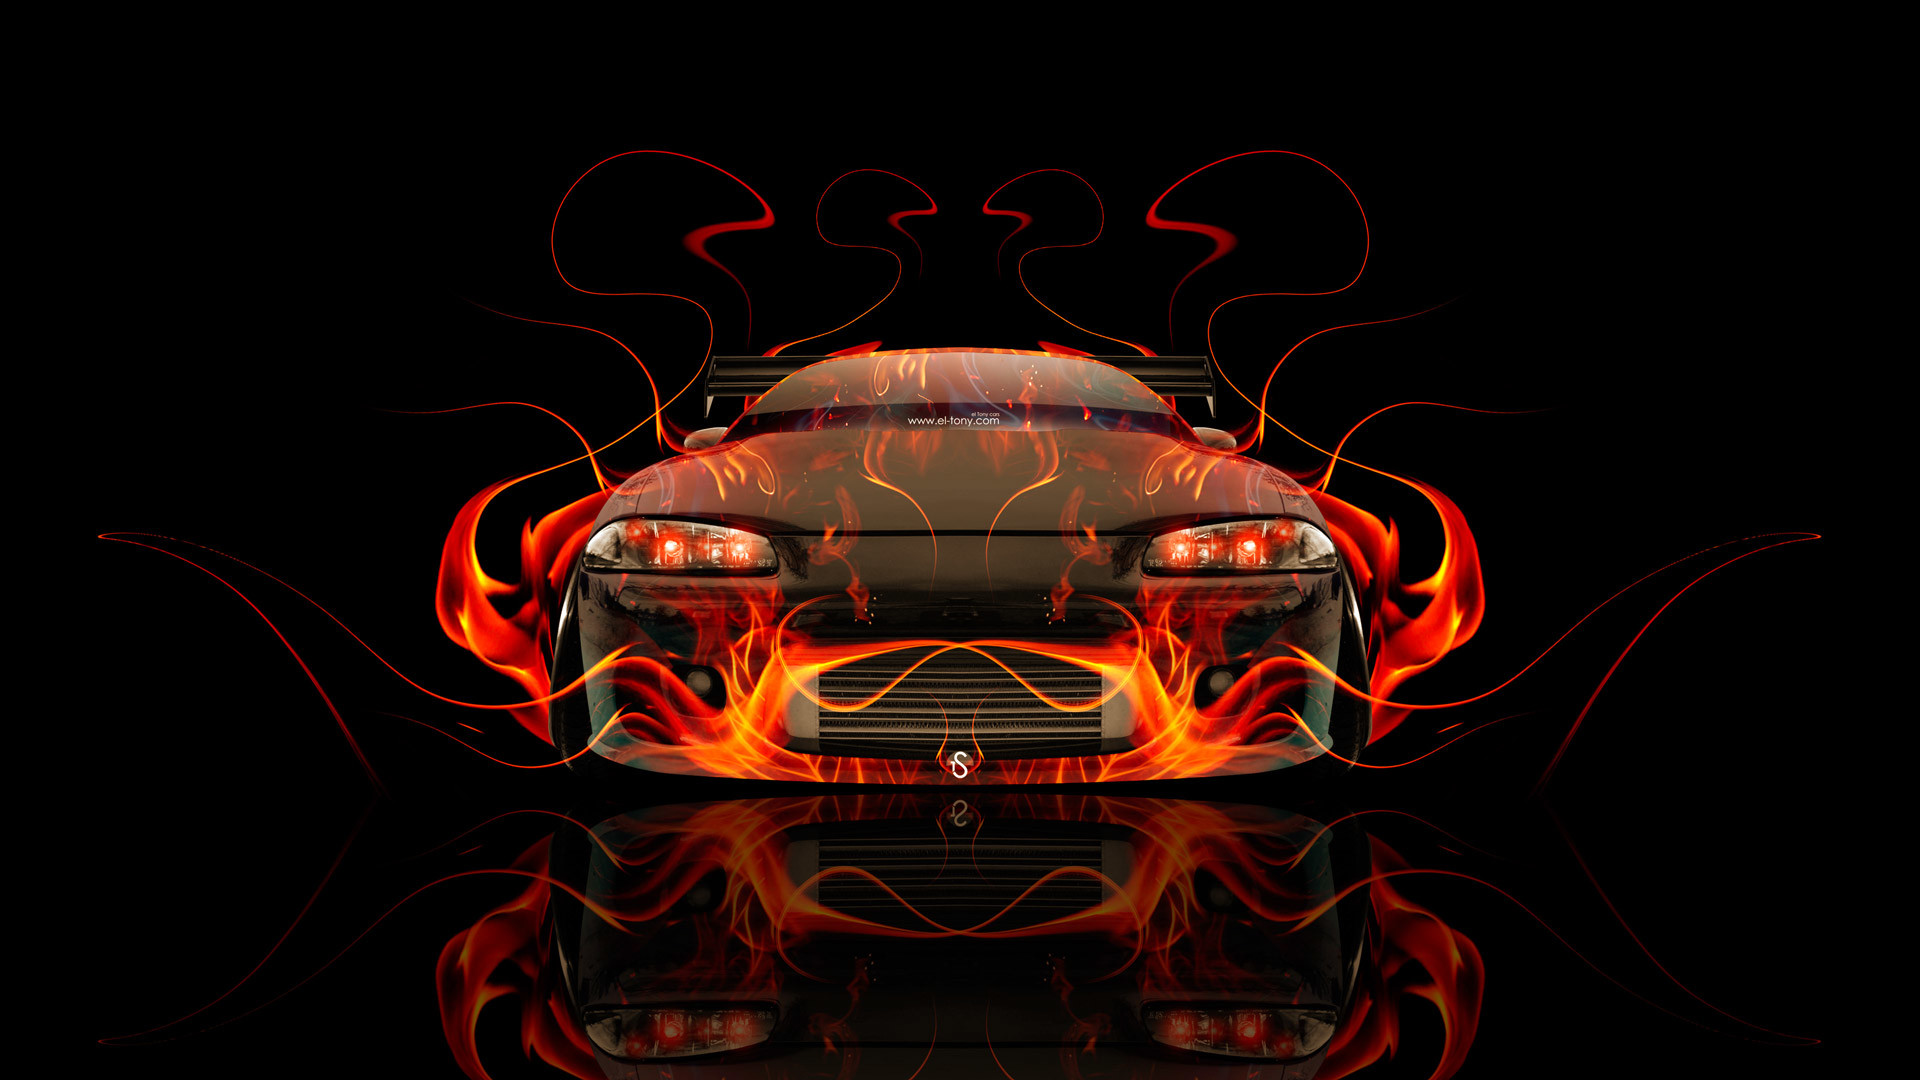 1920x1080 Mitsubishi Eclipse JDM Tuning Front Fire Abstract Car